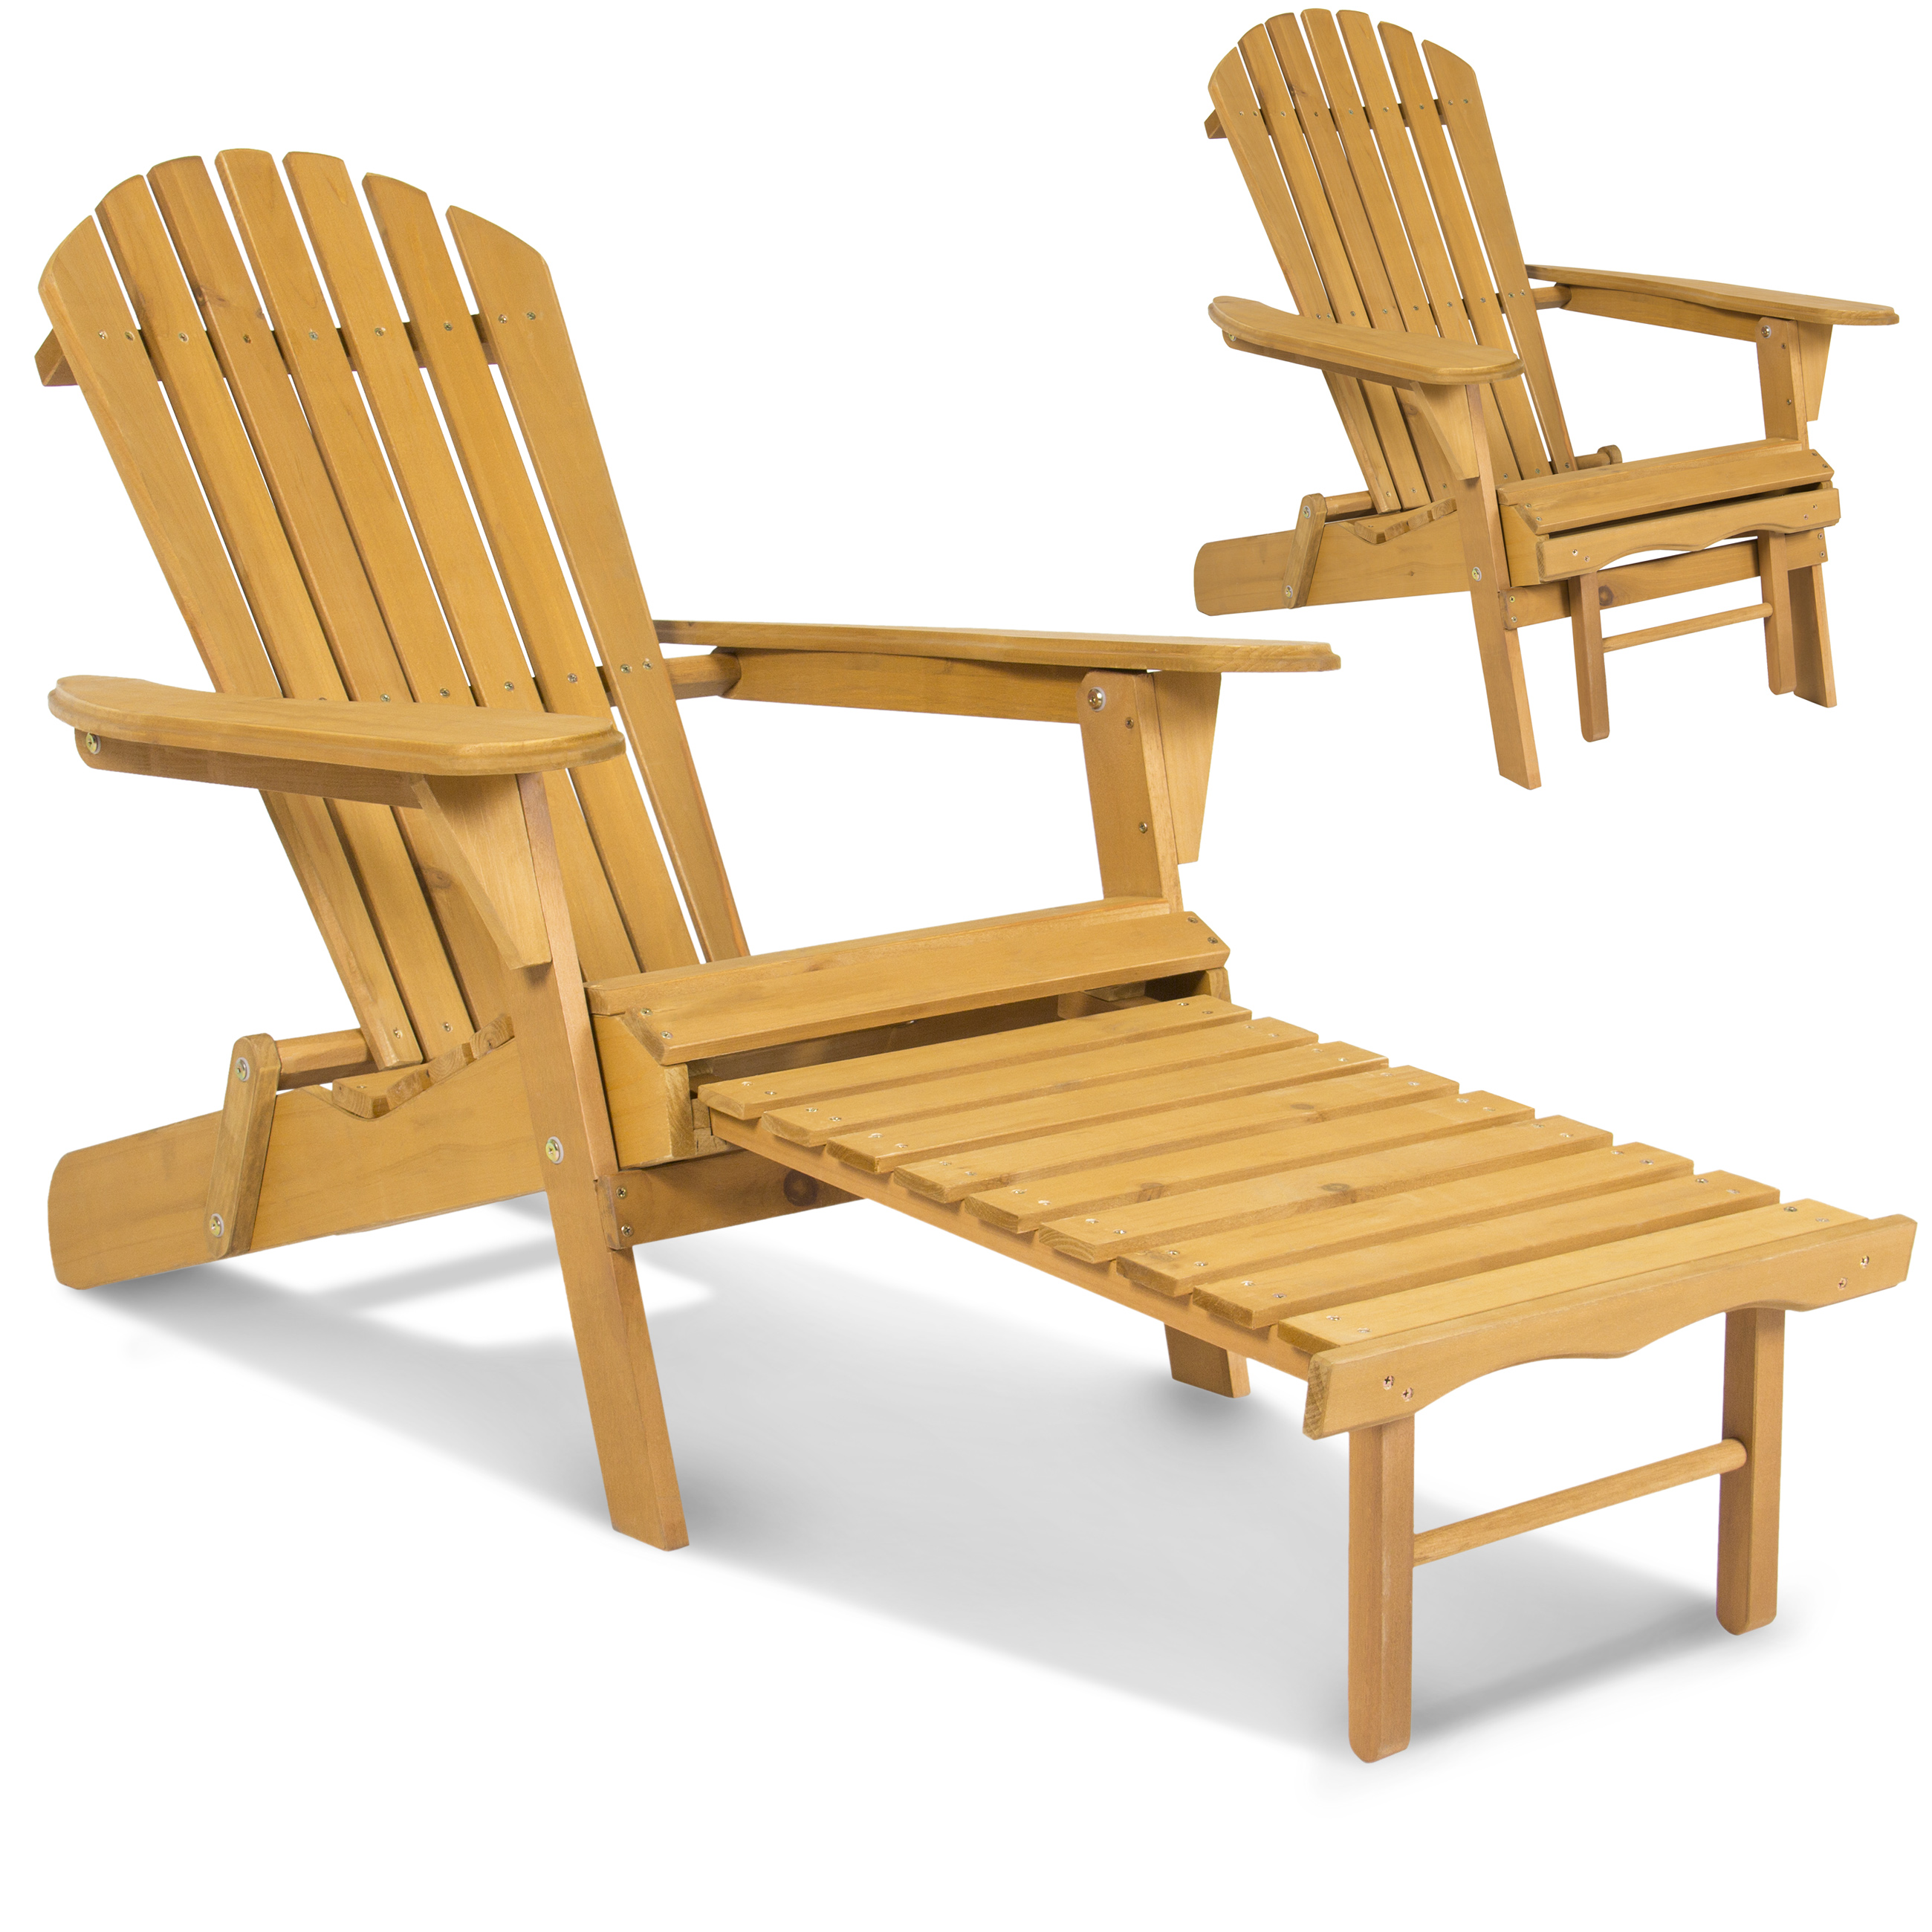 Attirant Reduced Price. Product Image Best Choice Products Outdoor Wood Adirondack  Chair Foldable W/ Pull Out Ottoman Patio Deck Furniture